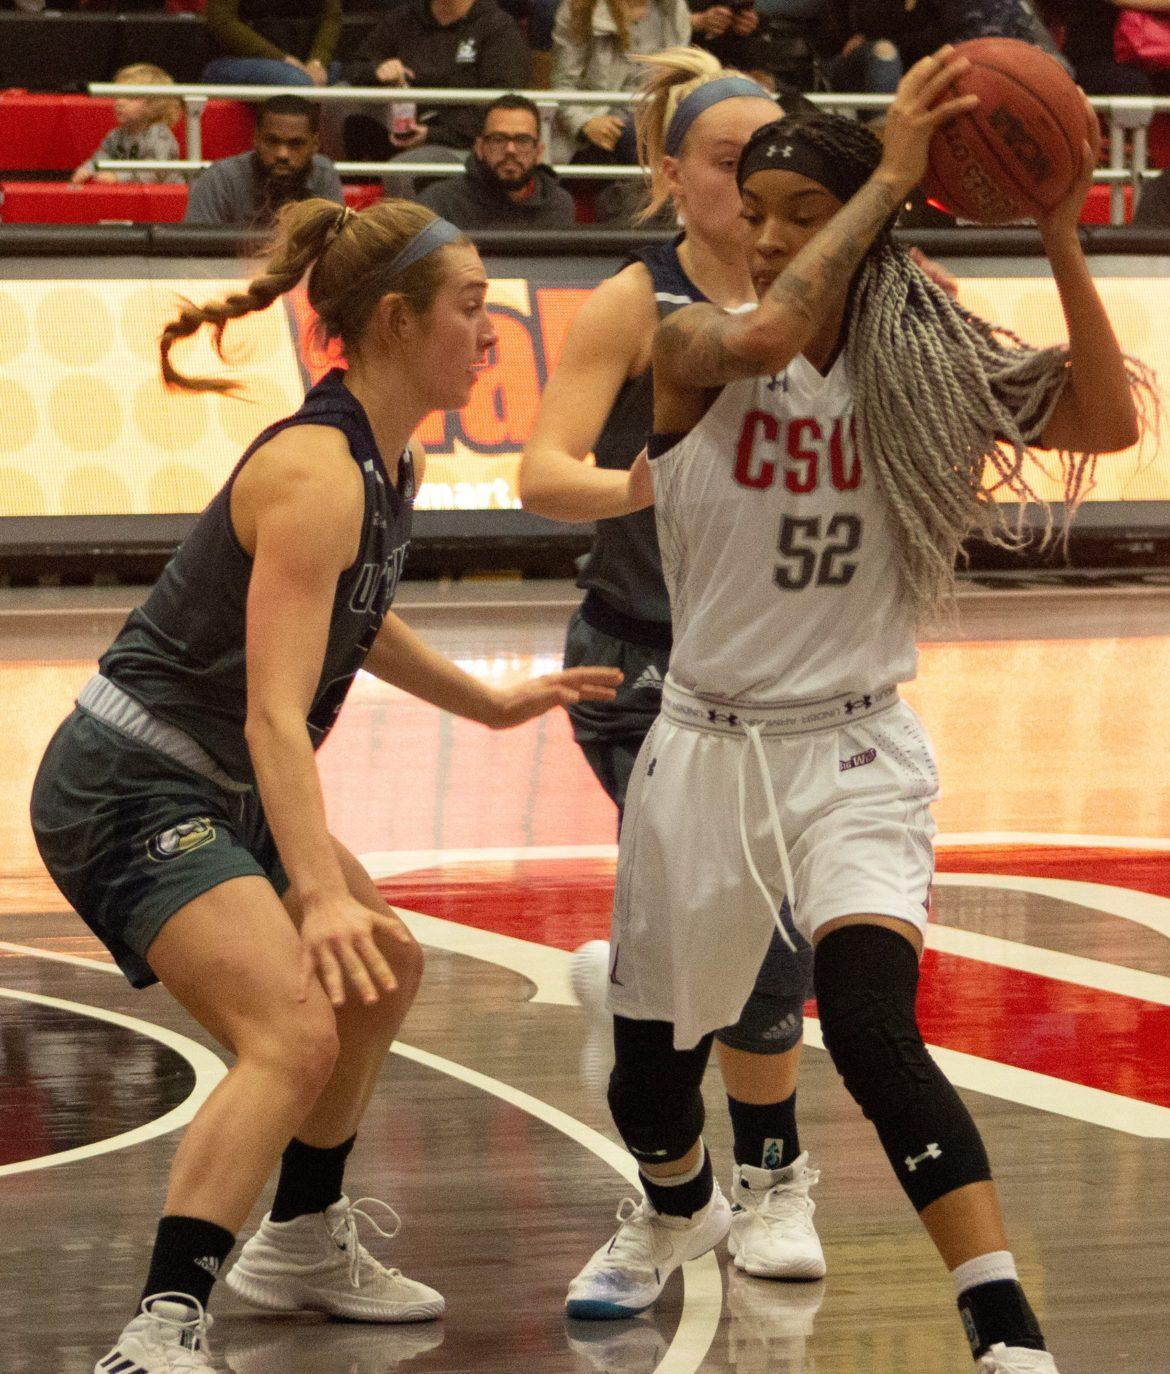 A+CSUN+Women%27s+basketball+player+benig+guarded+by+two+players